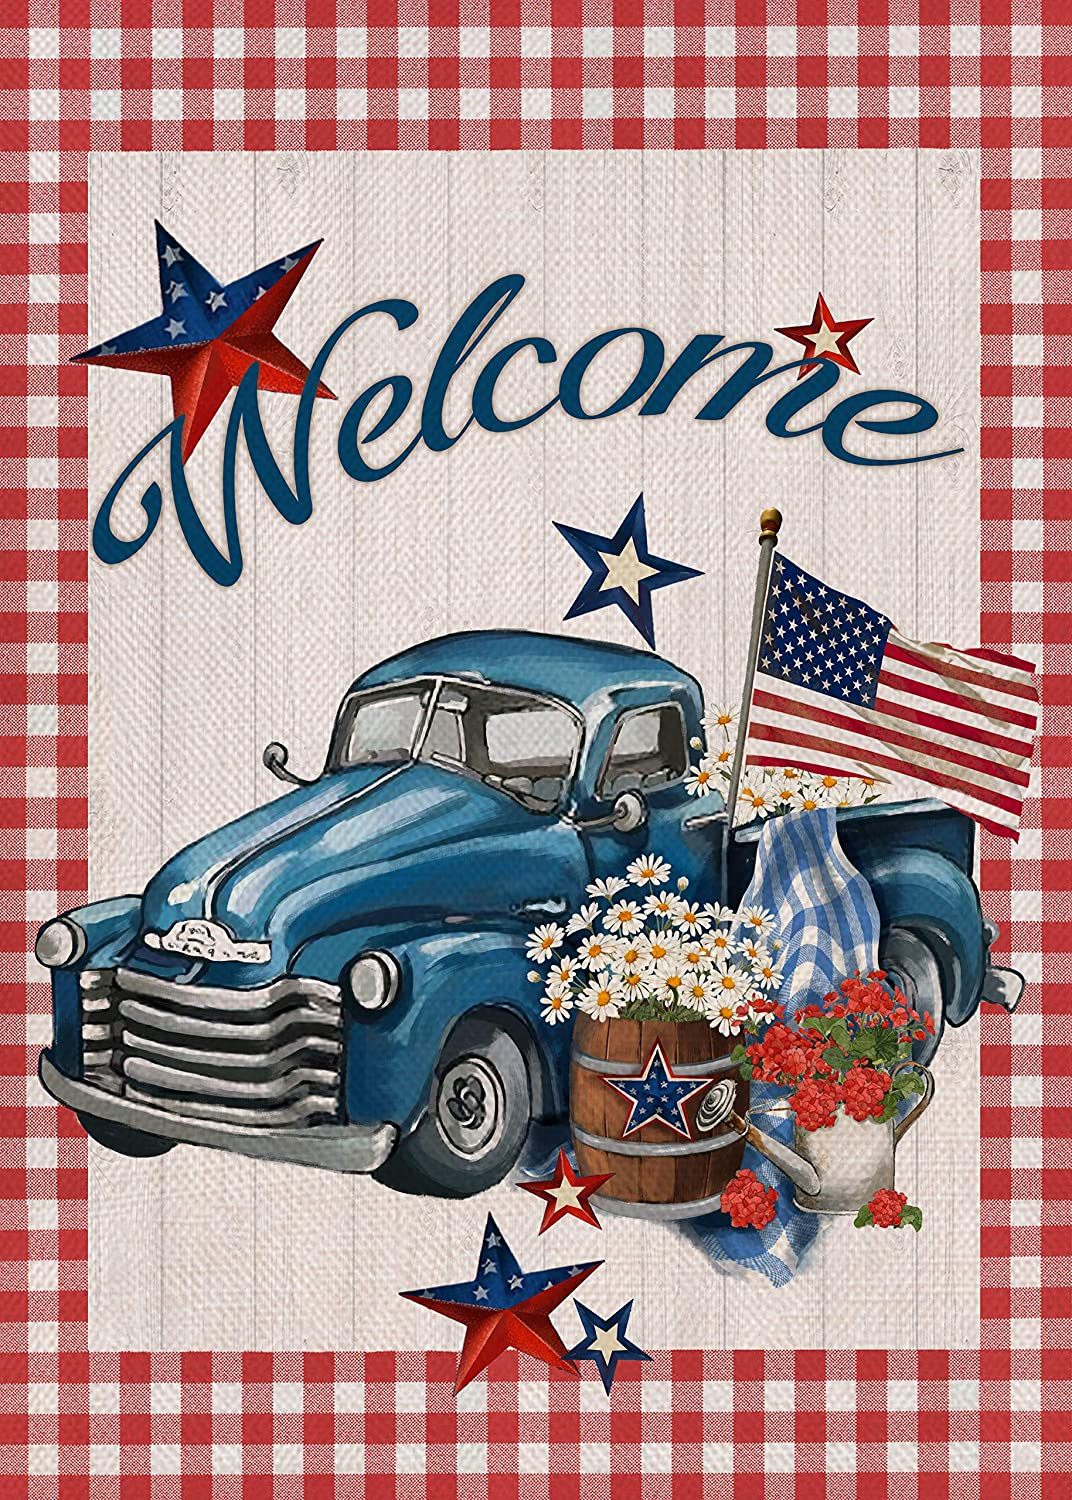 Covido Home Decorative July 4th Welcome Garden Flag, American Red White Blue Truck Star House Yard Decor Sign Summer Outside Decorations, USA Patriotic Outdoor Burlap Small Flag Double Sided 12x18